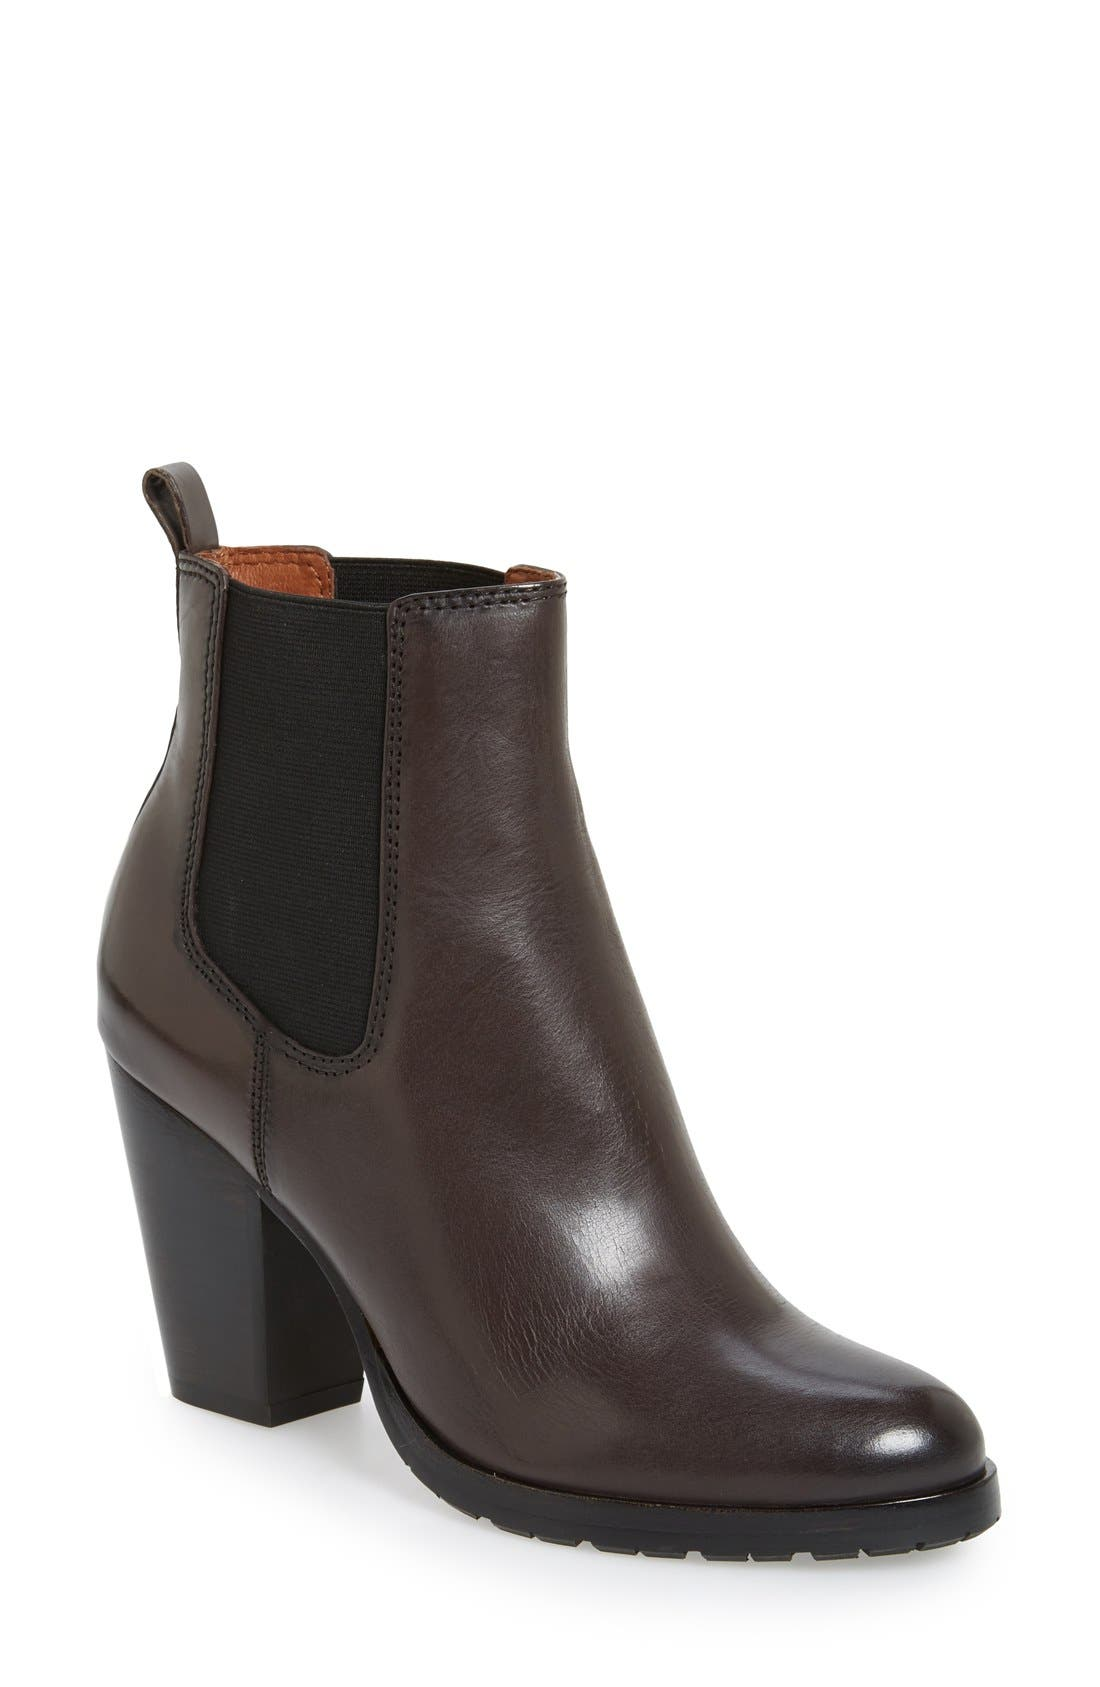 Alternate Image 1 Selected - Frye 'Tate' Chelsea Boot (Women)